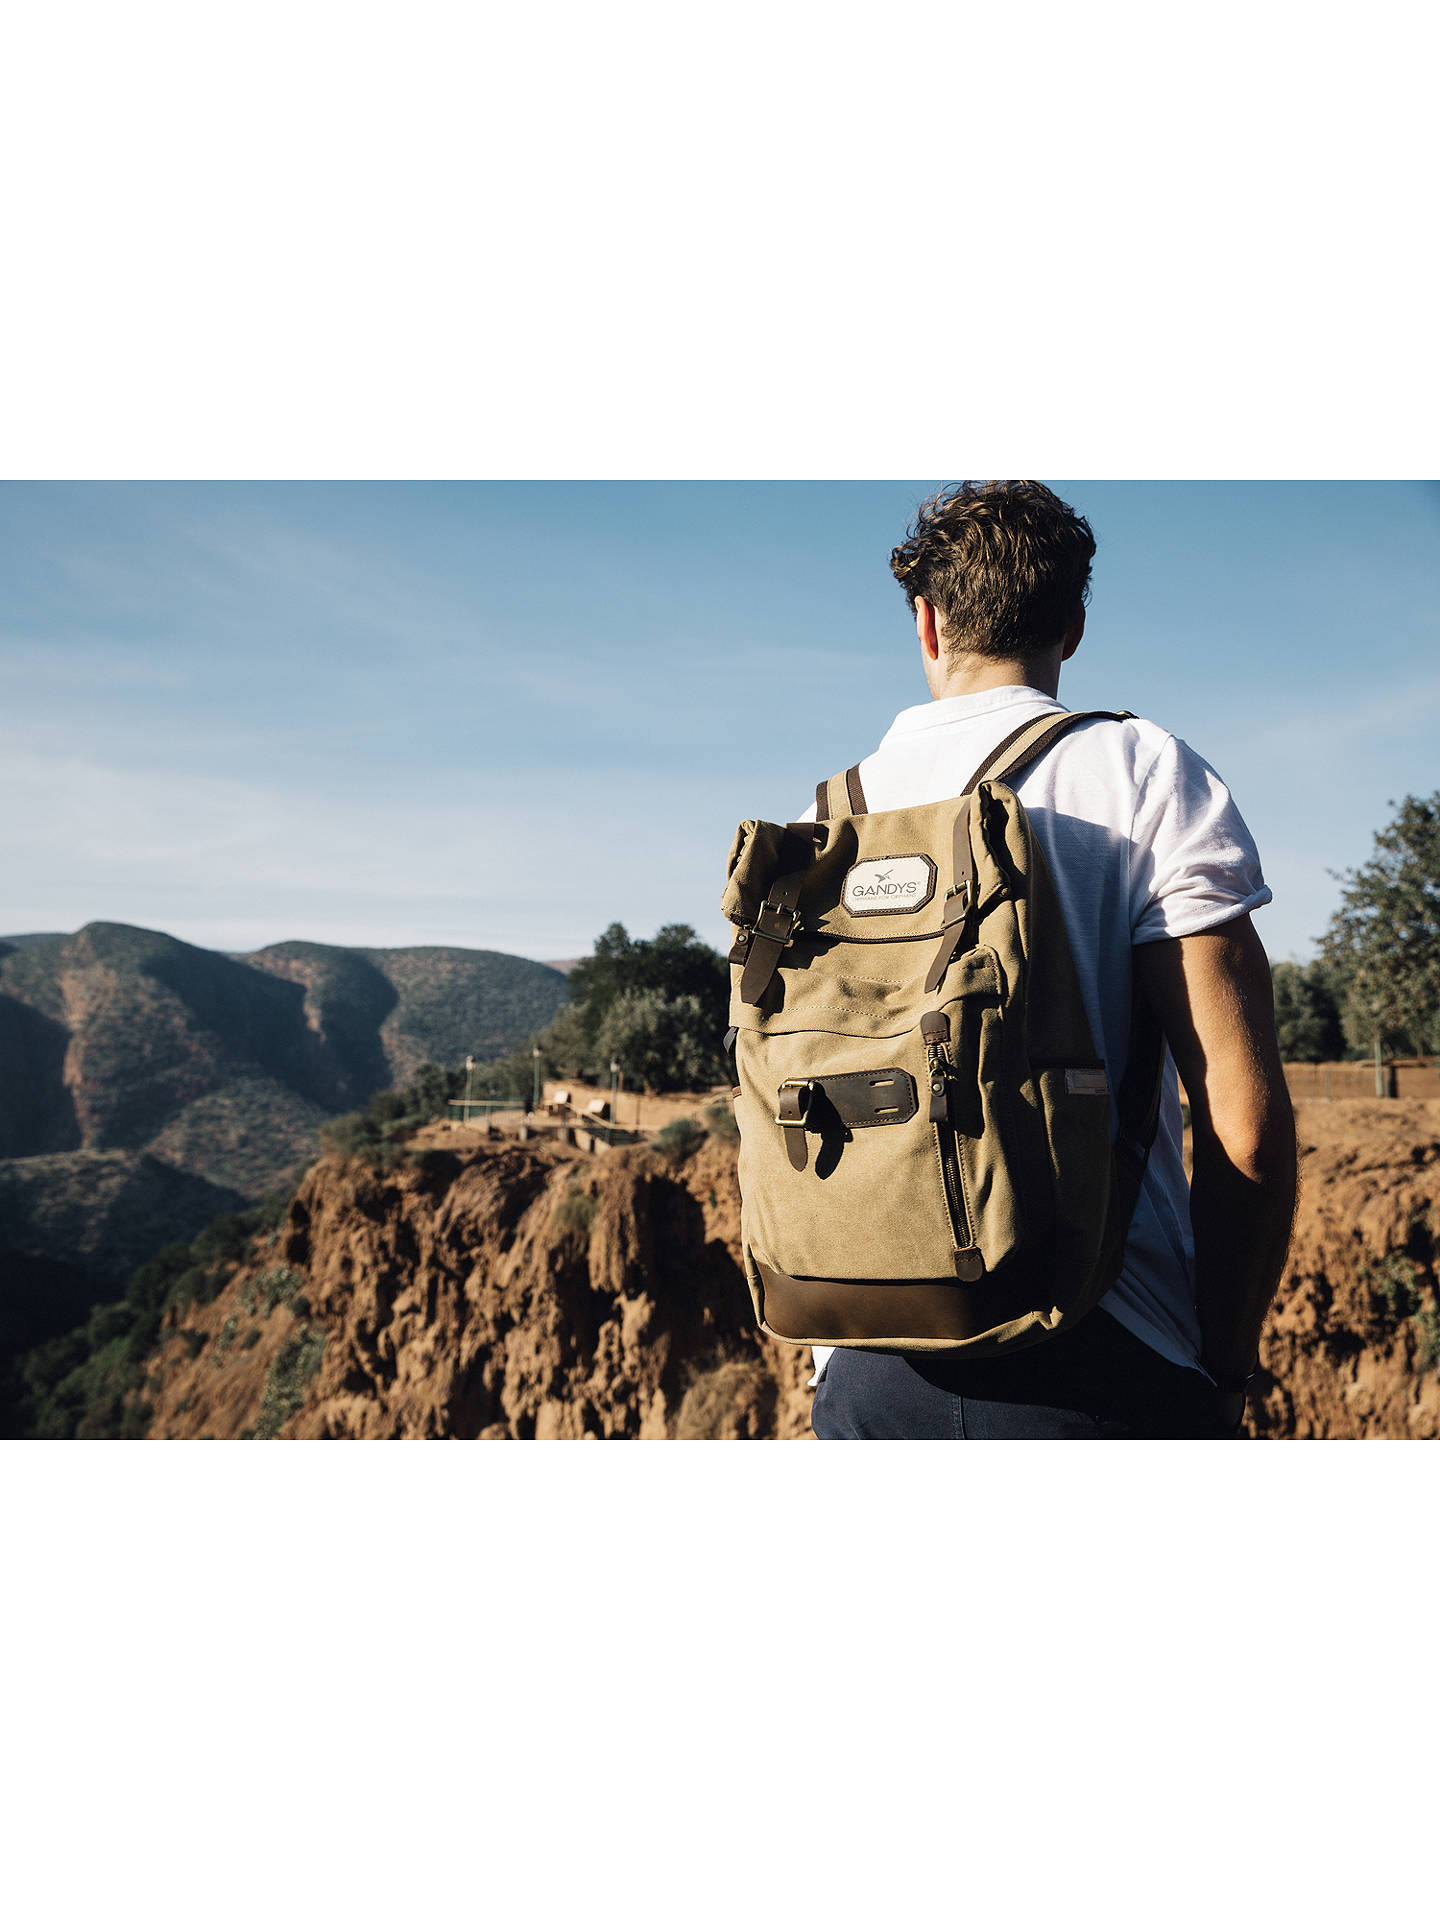 ... BuyGandys Bali Authentic Voyager Backpack, Beige Online at johnlewis.com 85d8b2eb86